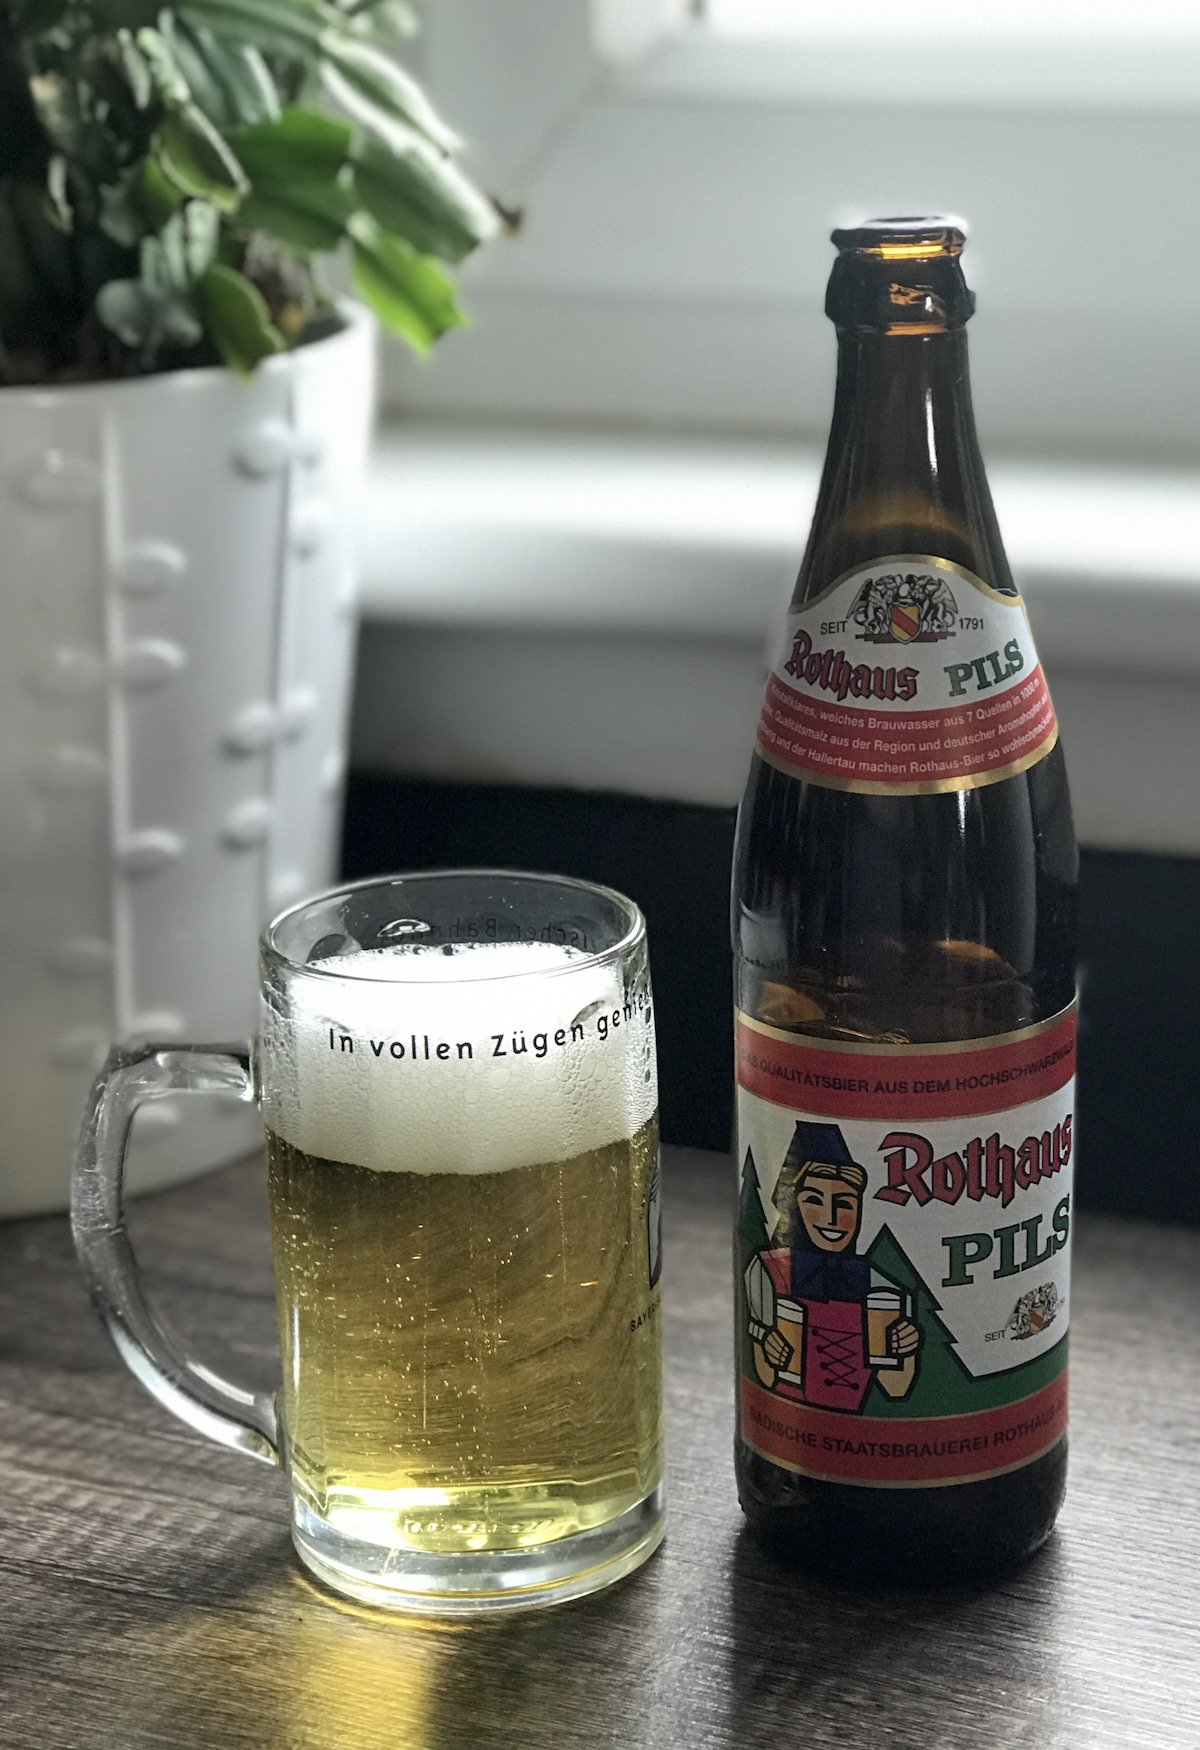 The beer town rothaus pils